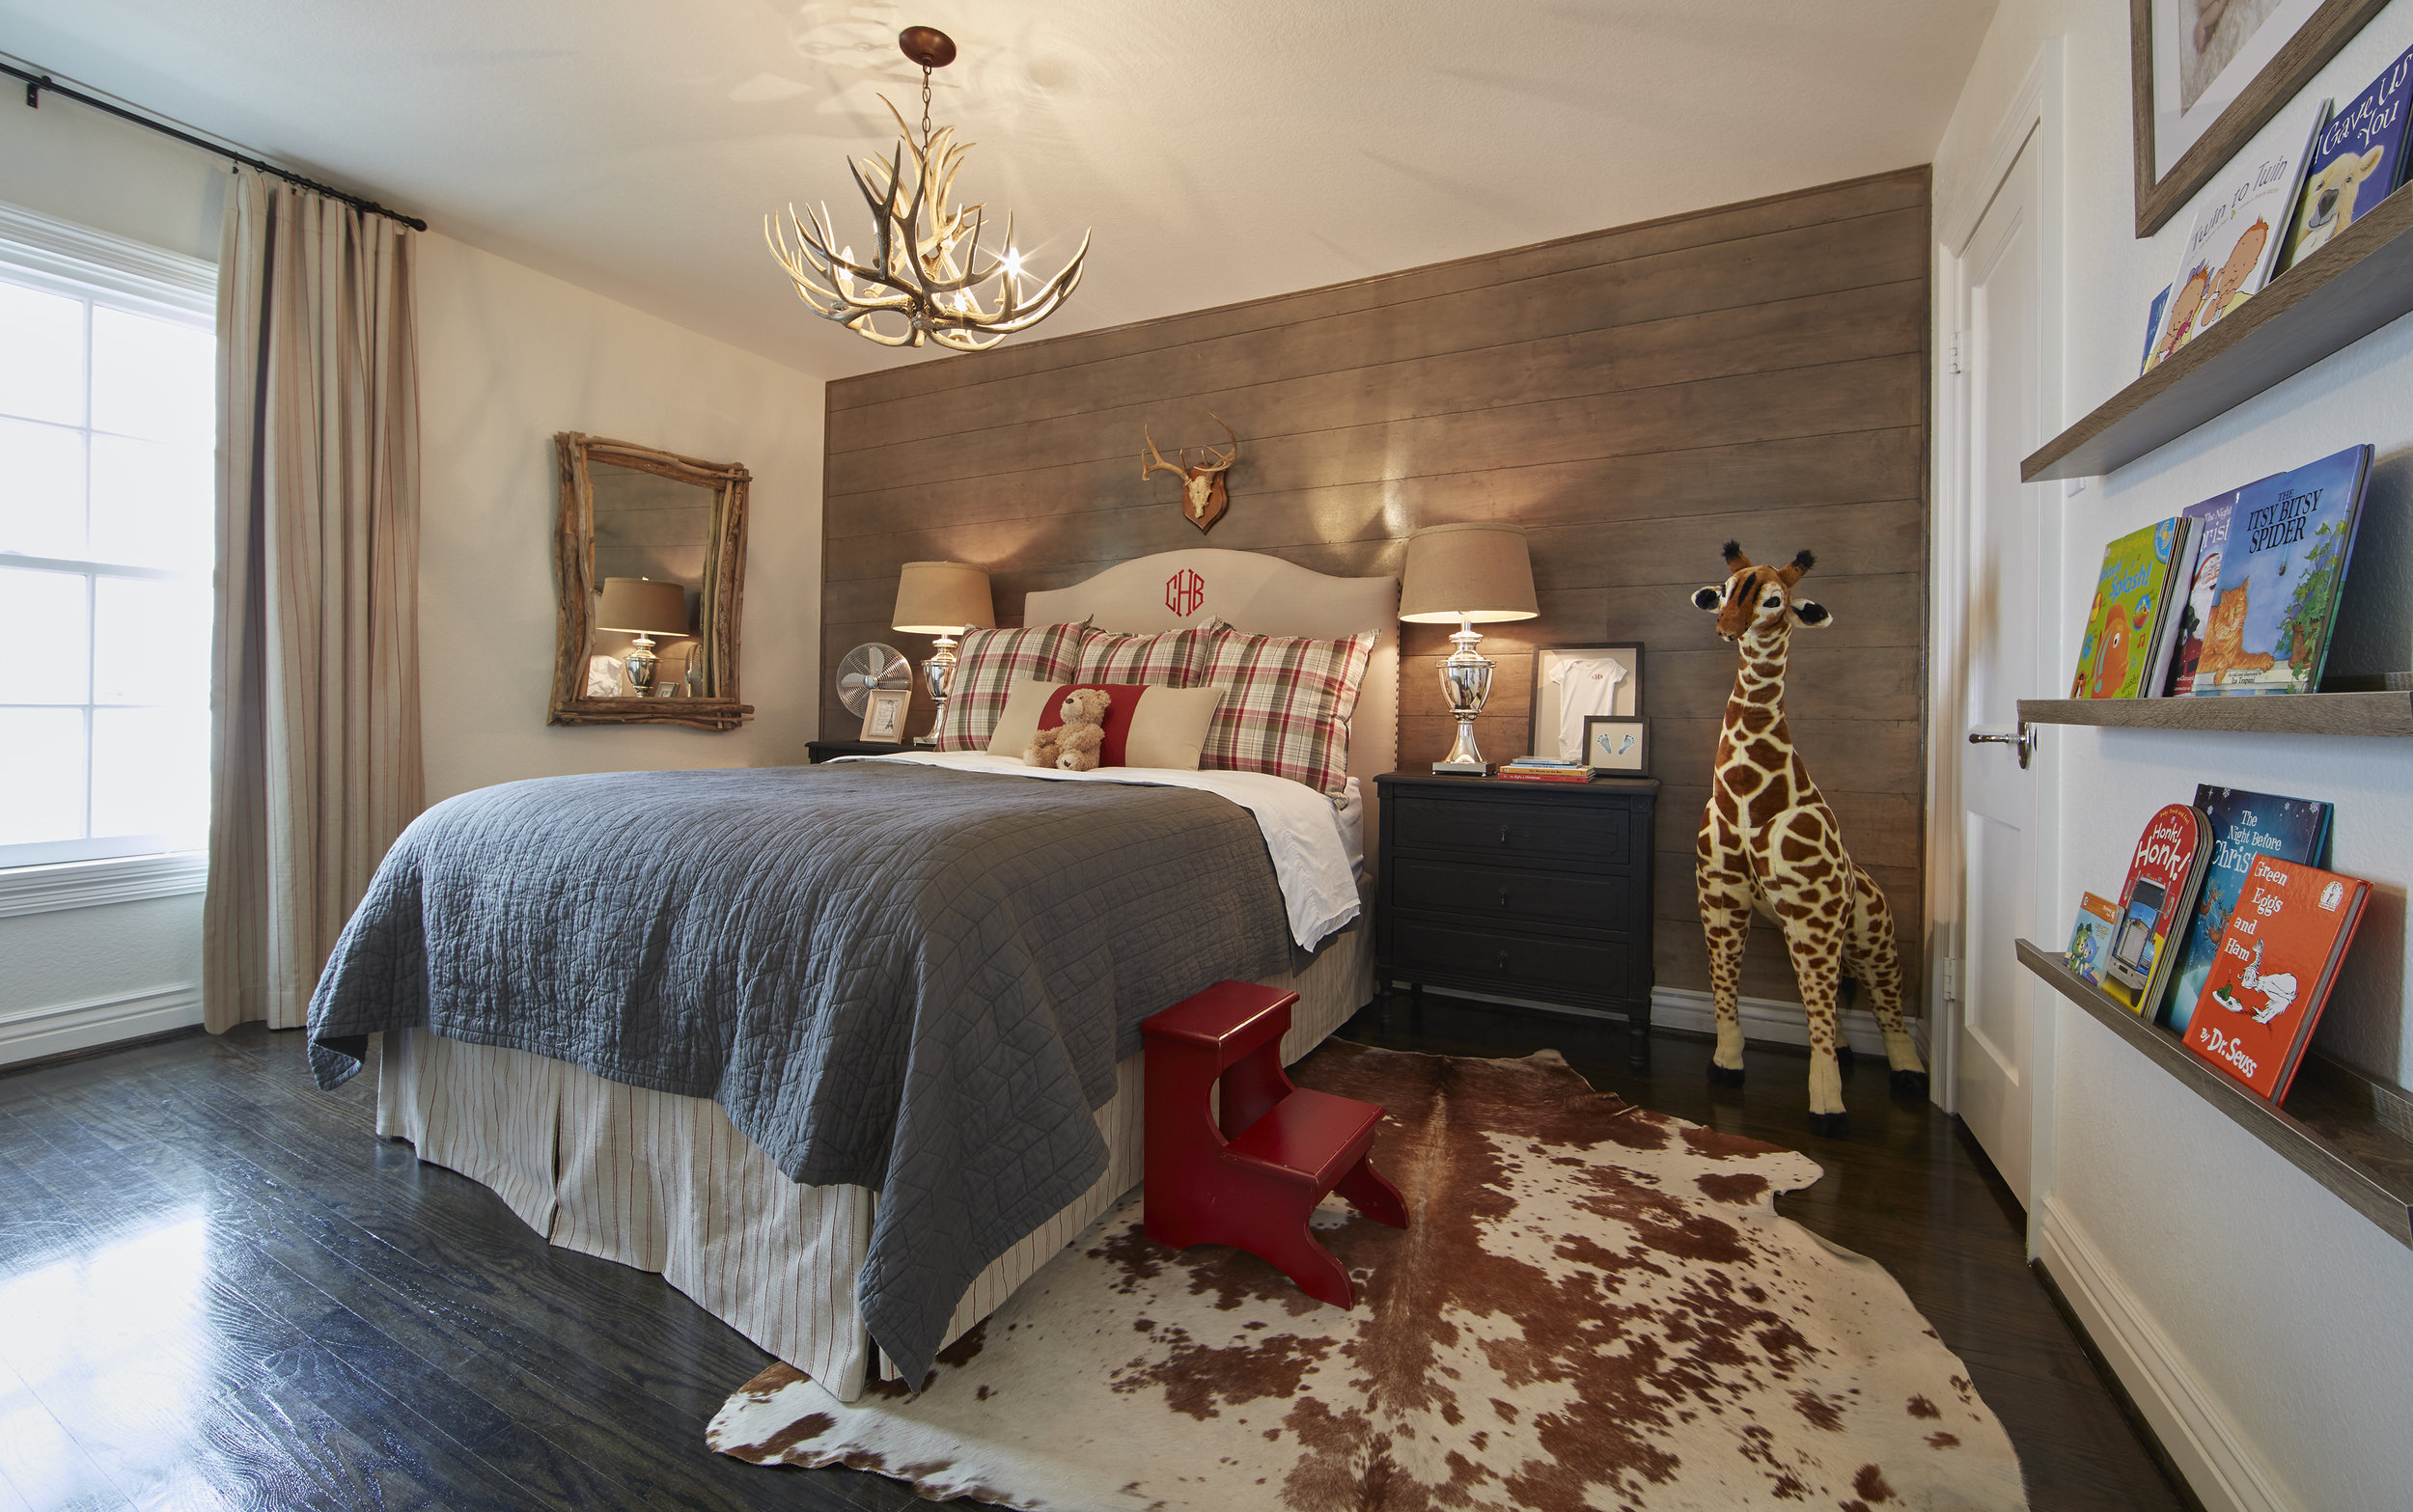 Son Beckham's room features a more rustic take on farmhouse styling with its stained shiplap wall, antler chandelier and cowhide rug. Emily chose red accents to reflect his fiery personality.